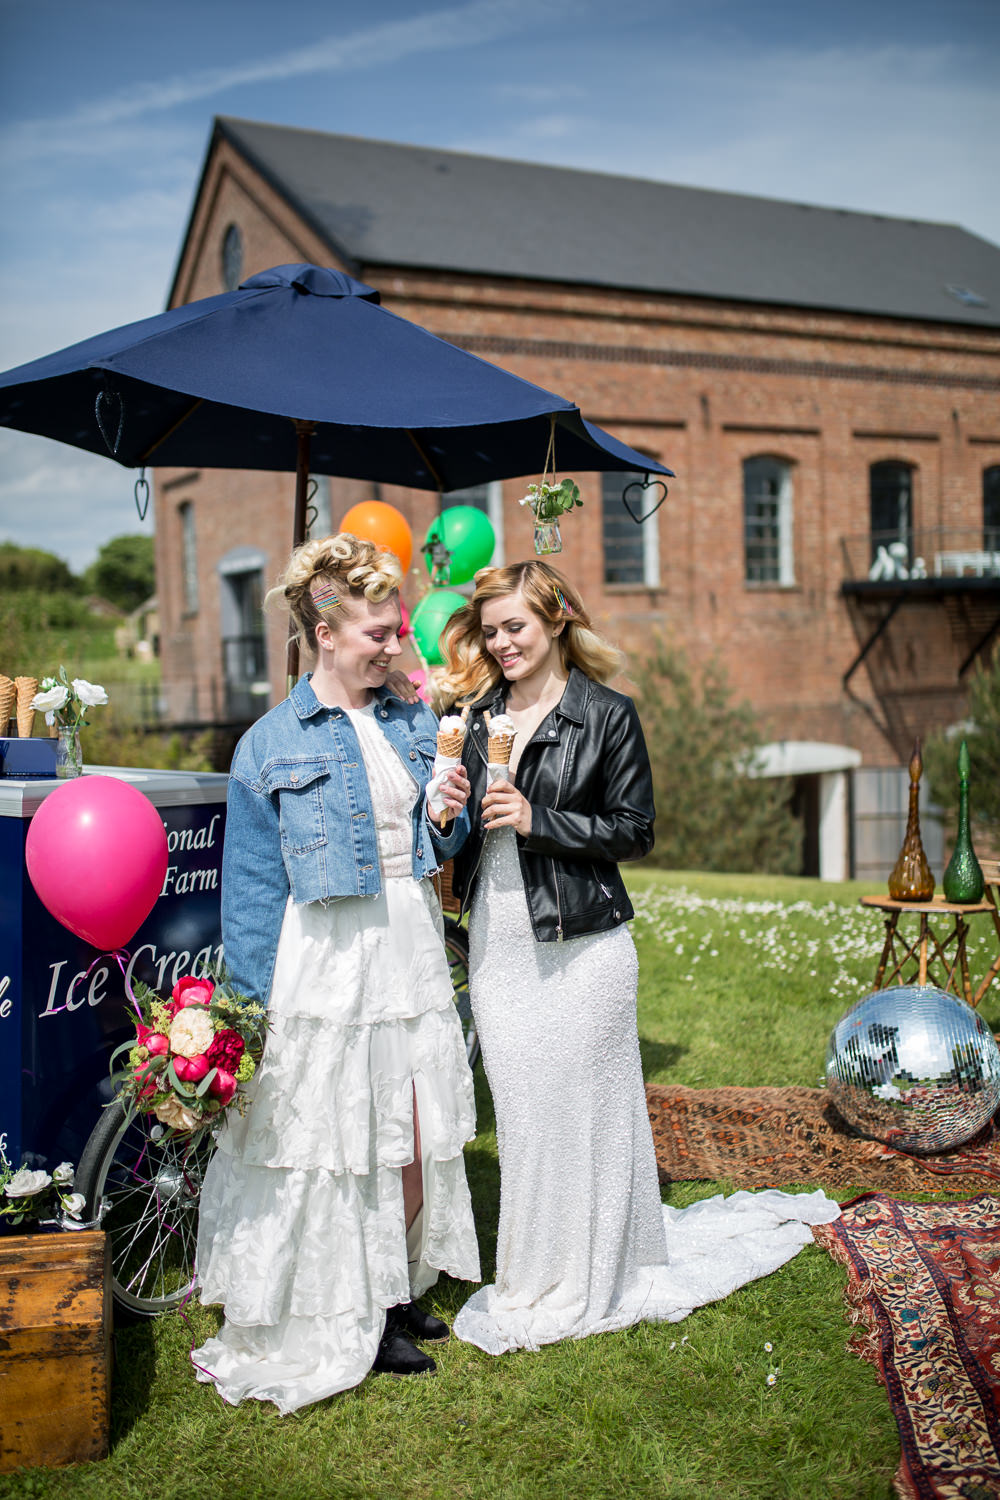 Ice Cream Cart Colourful Balloons Wedding Ideas Florence Berry Photography